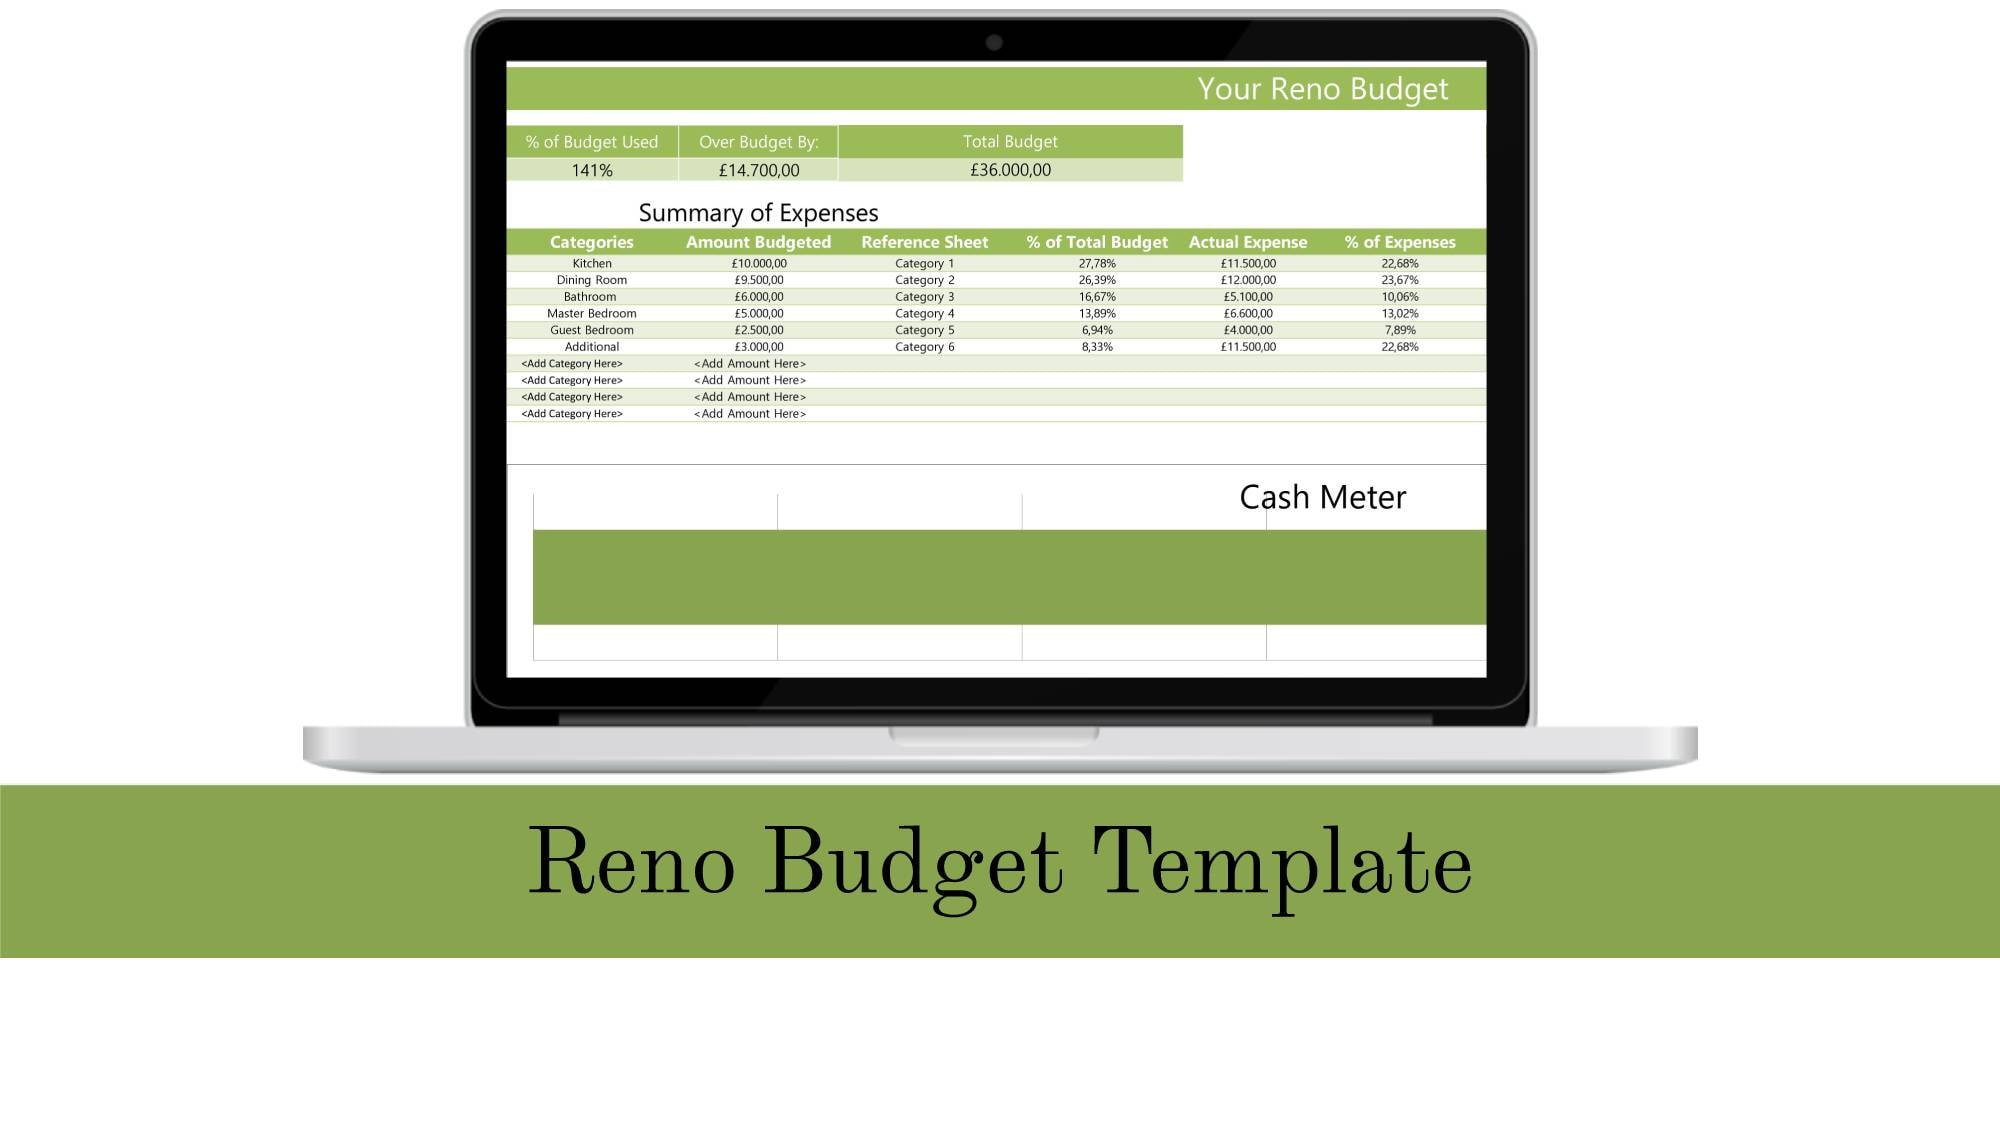 Home Reno Budget Template 2019 Excel Spreadsheet Simple Expense Tracker Home Renovation Planner Excel Template Simple Excel Spreadsheet